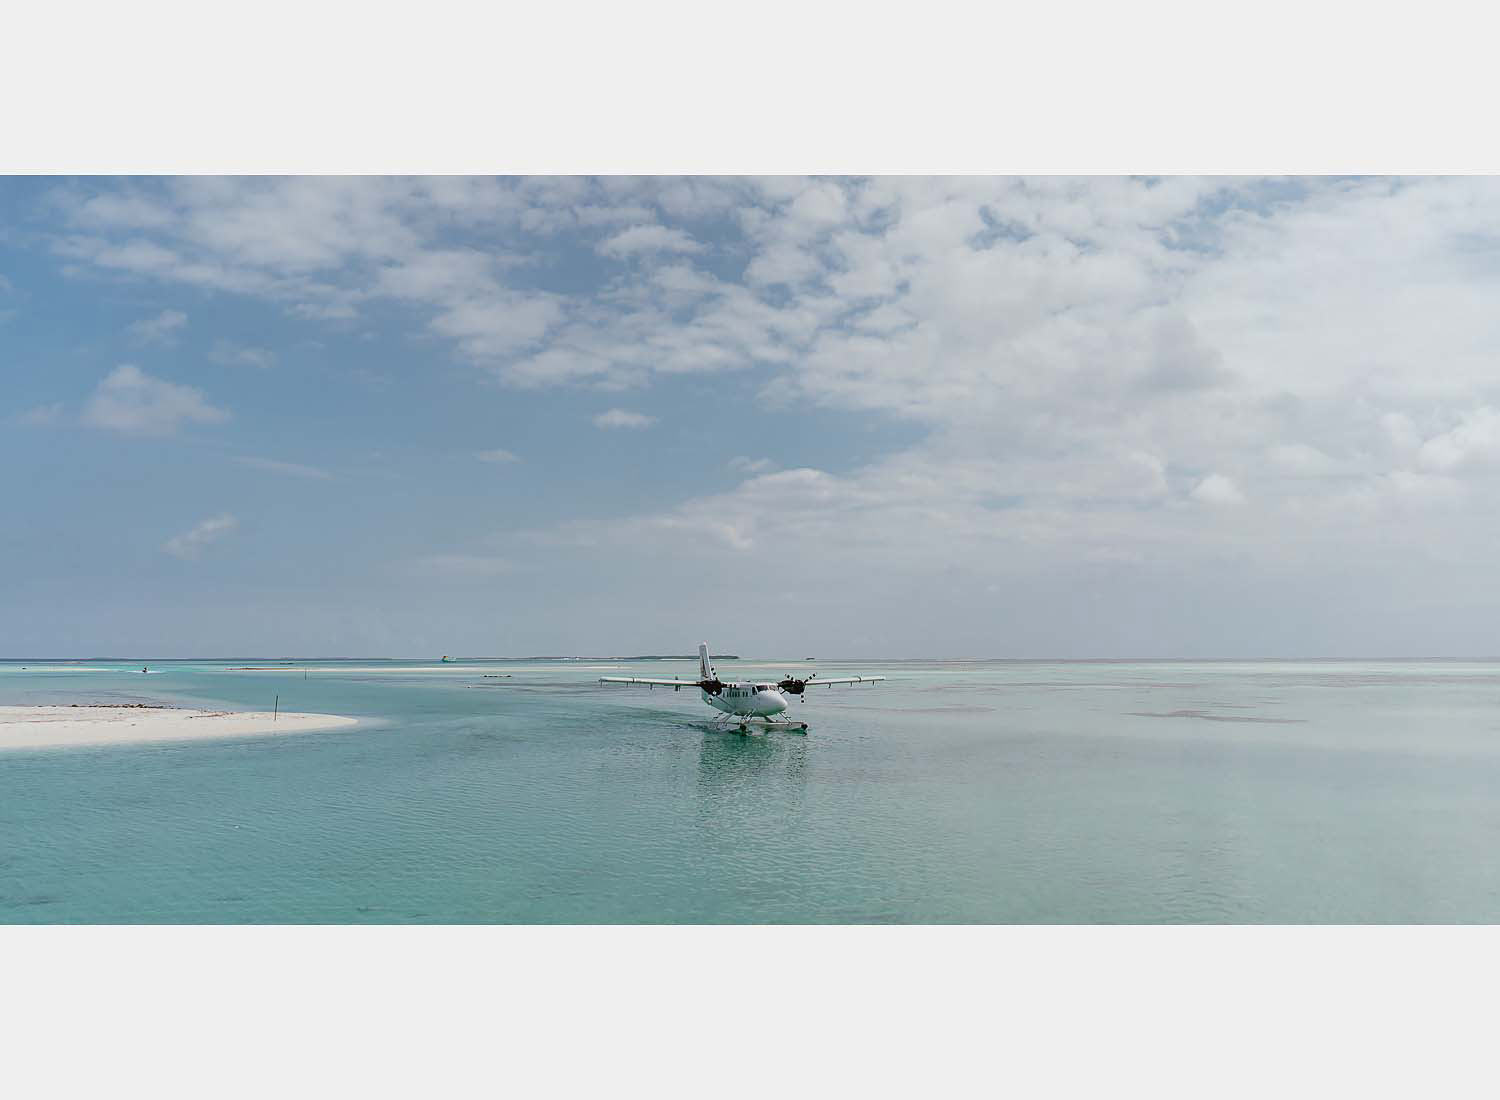 wedding photographer in maldives anniversary trip private sandbank affairs canoe dugout